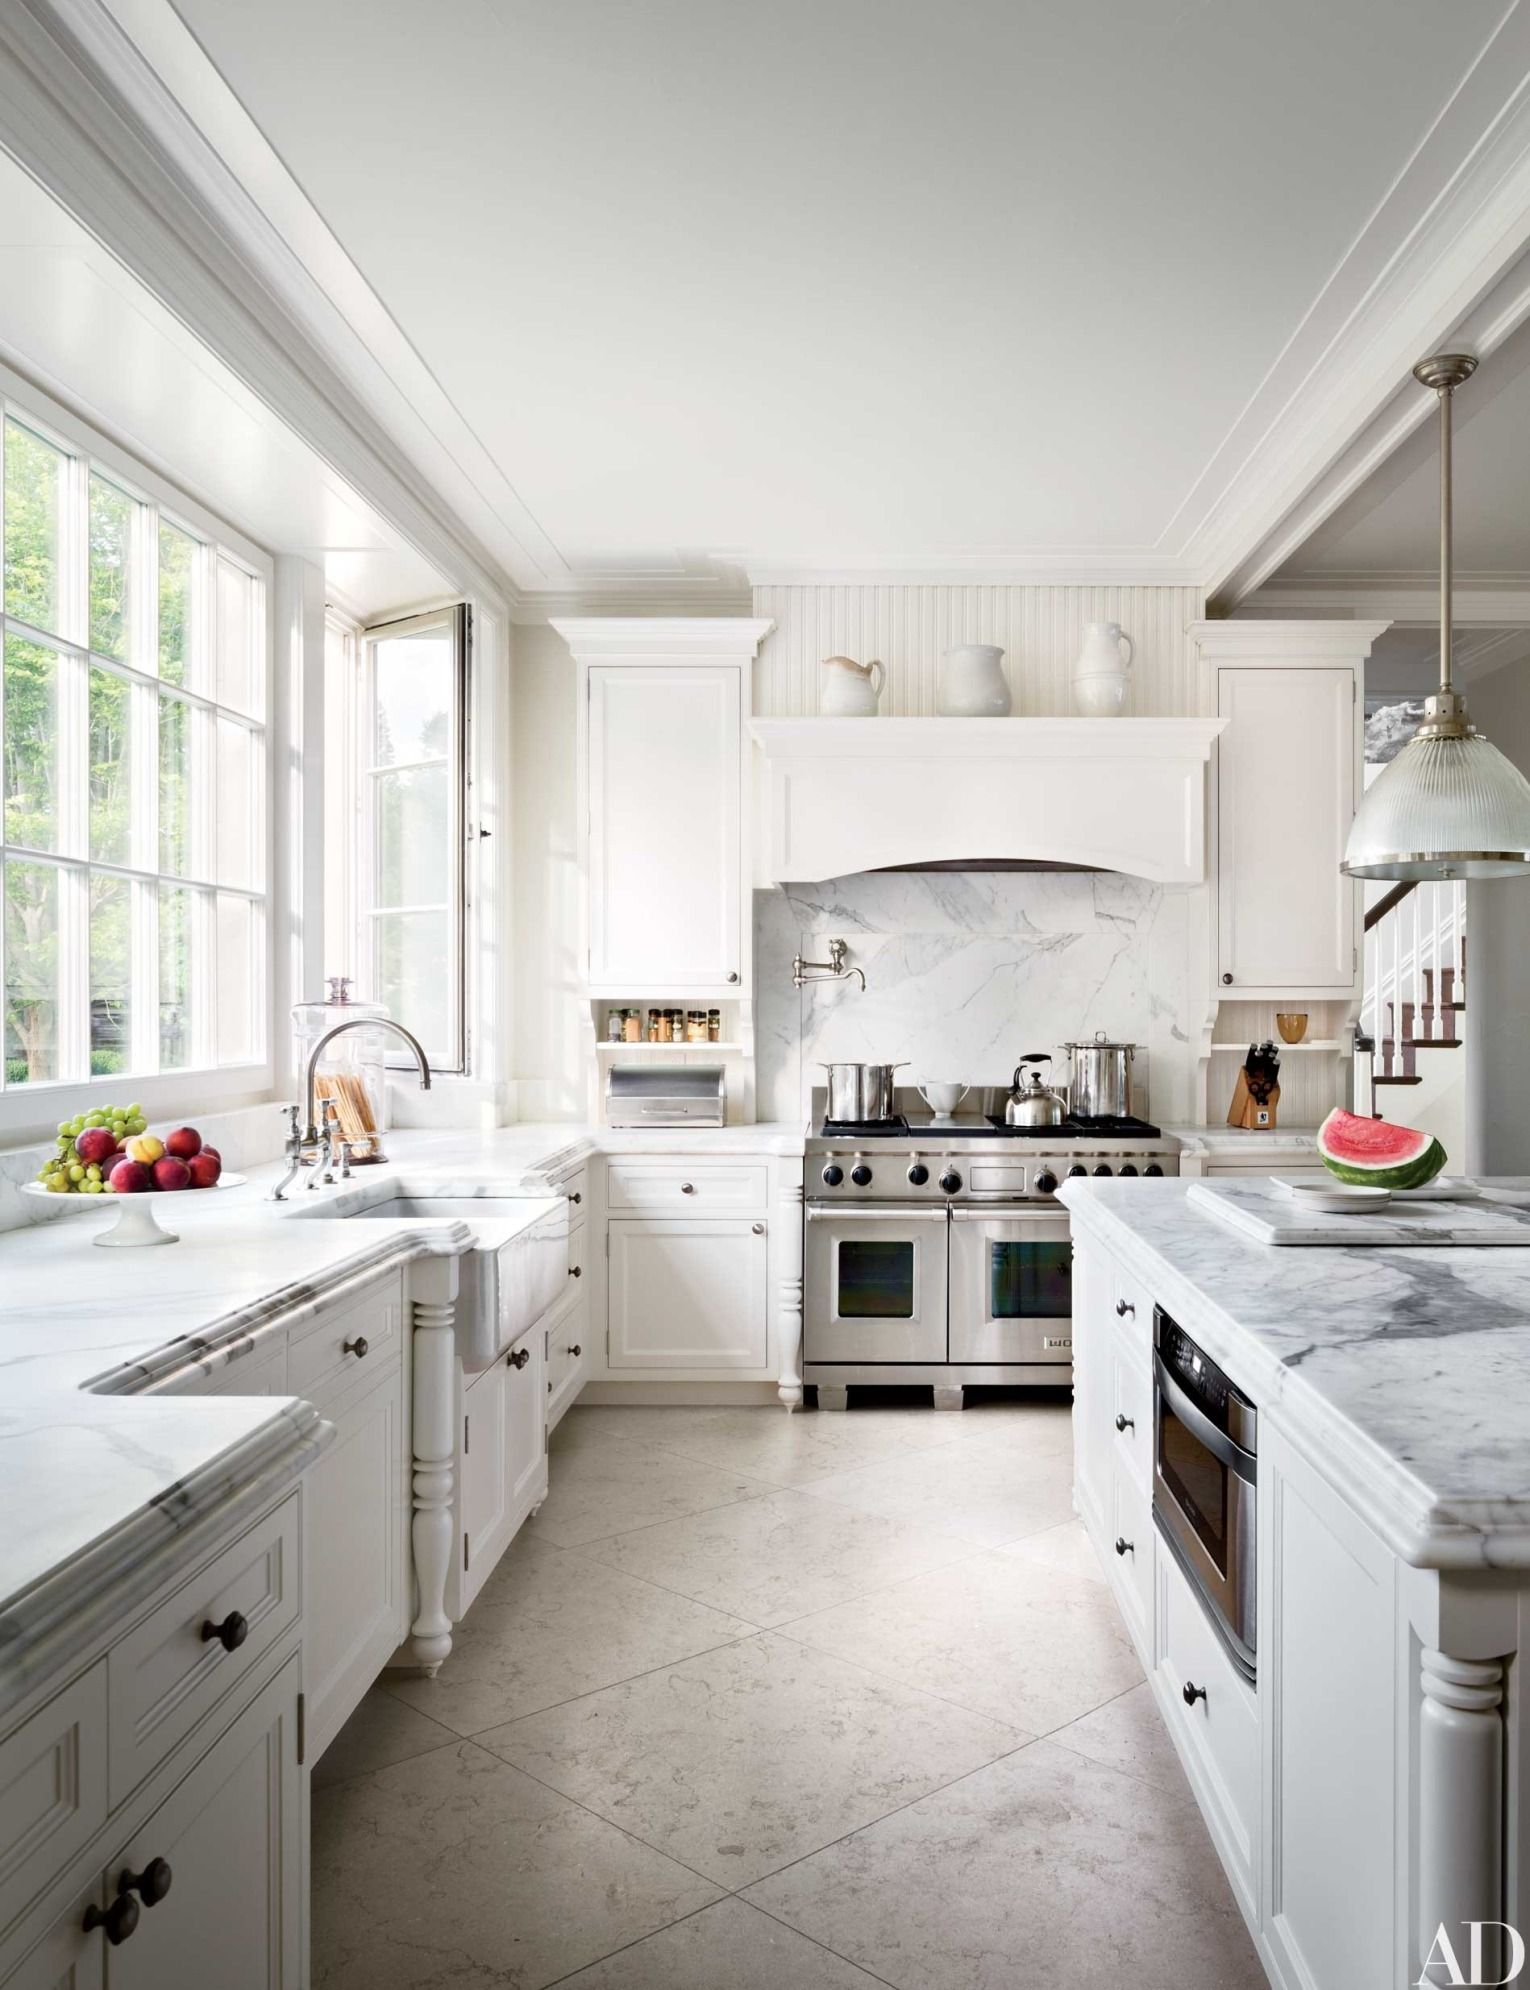 17 Kitchens with Classic Marble Countertops | Wolf range, Carrara ...